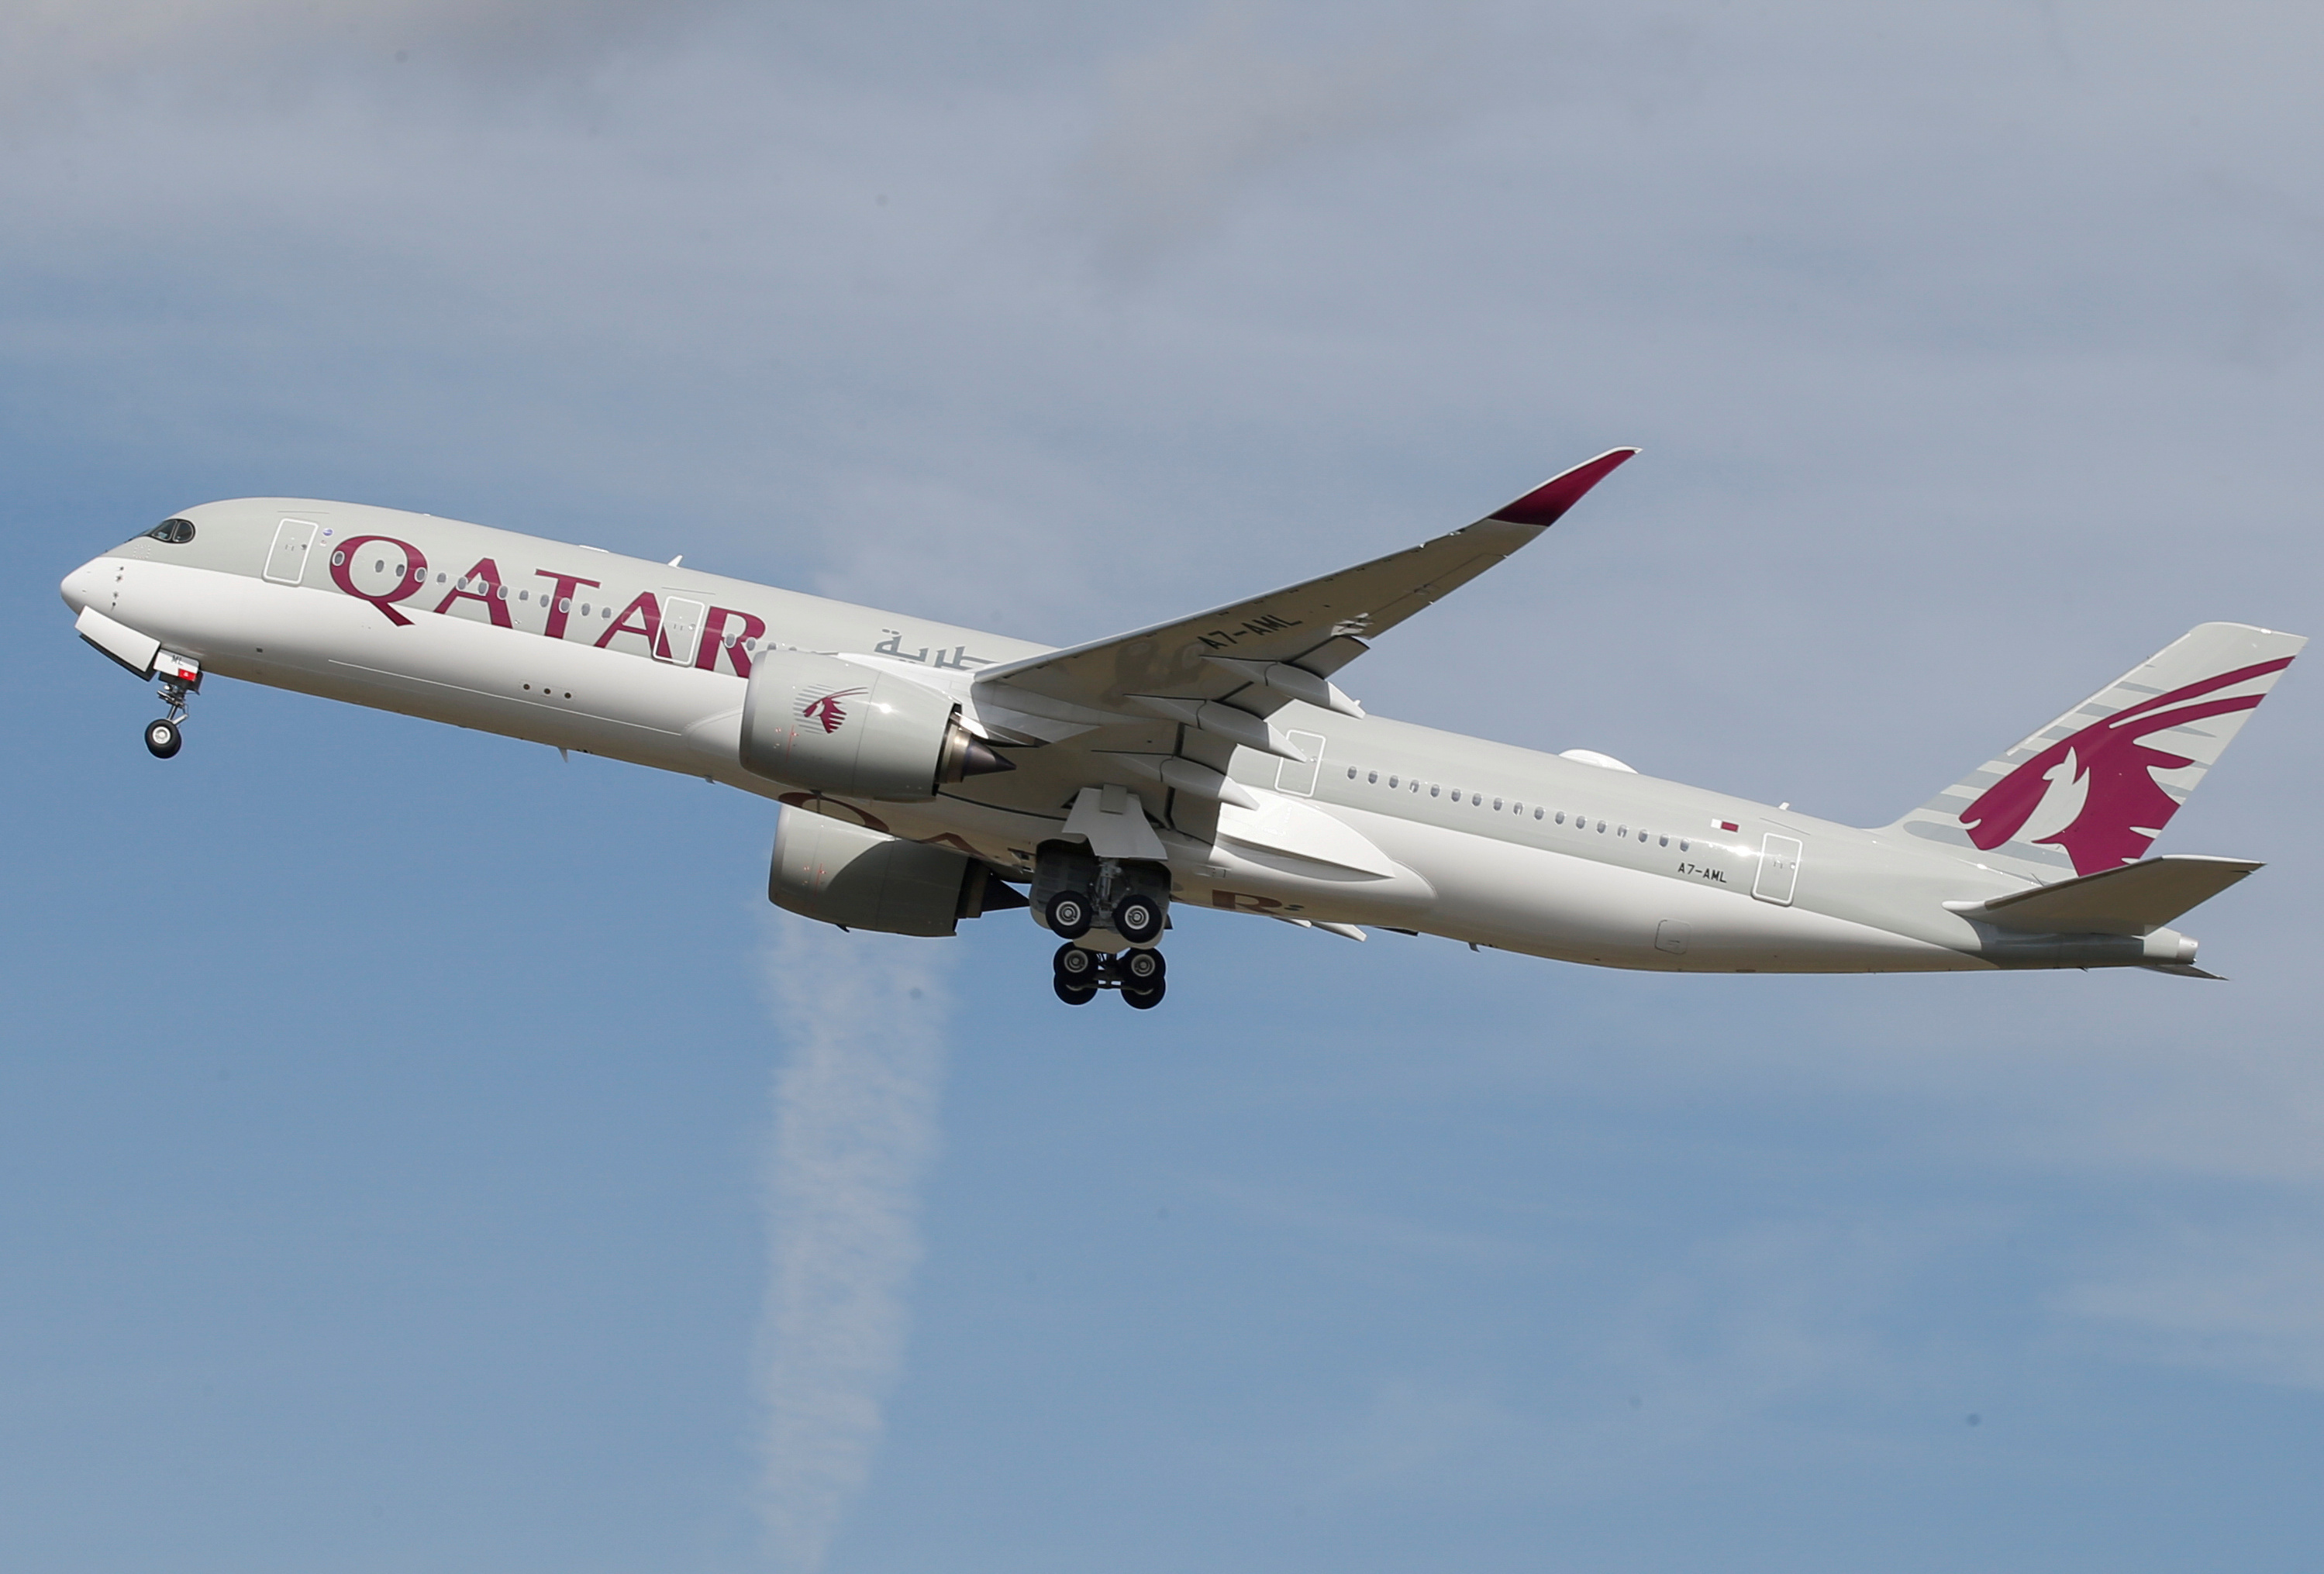 FILE PHOTO: A Qatar Airways aircraft takes off at the aircraft builder's headquarters of Airbus in Colomiers near Toulouse, France, September 27, 2019. Photo: Reuters